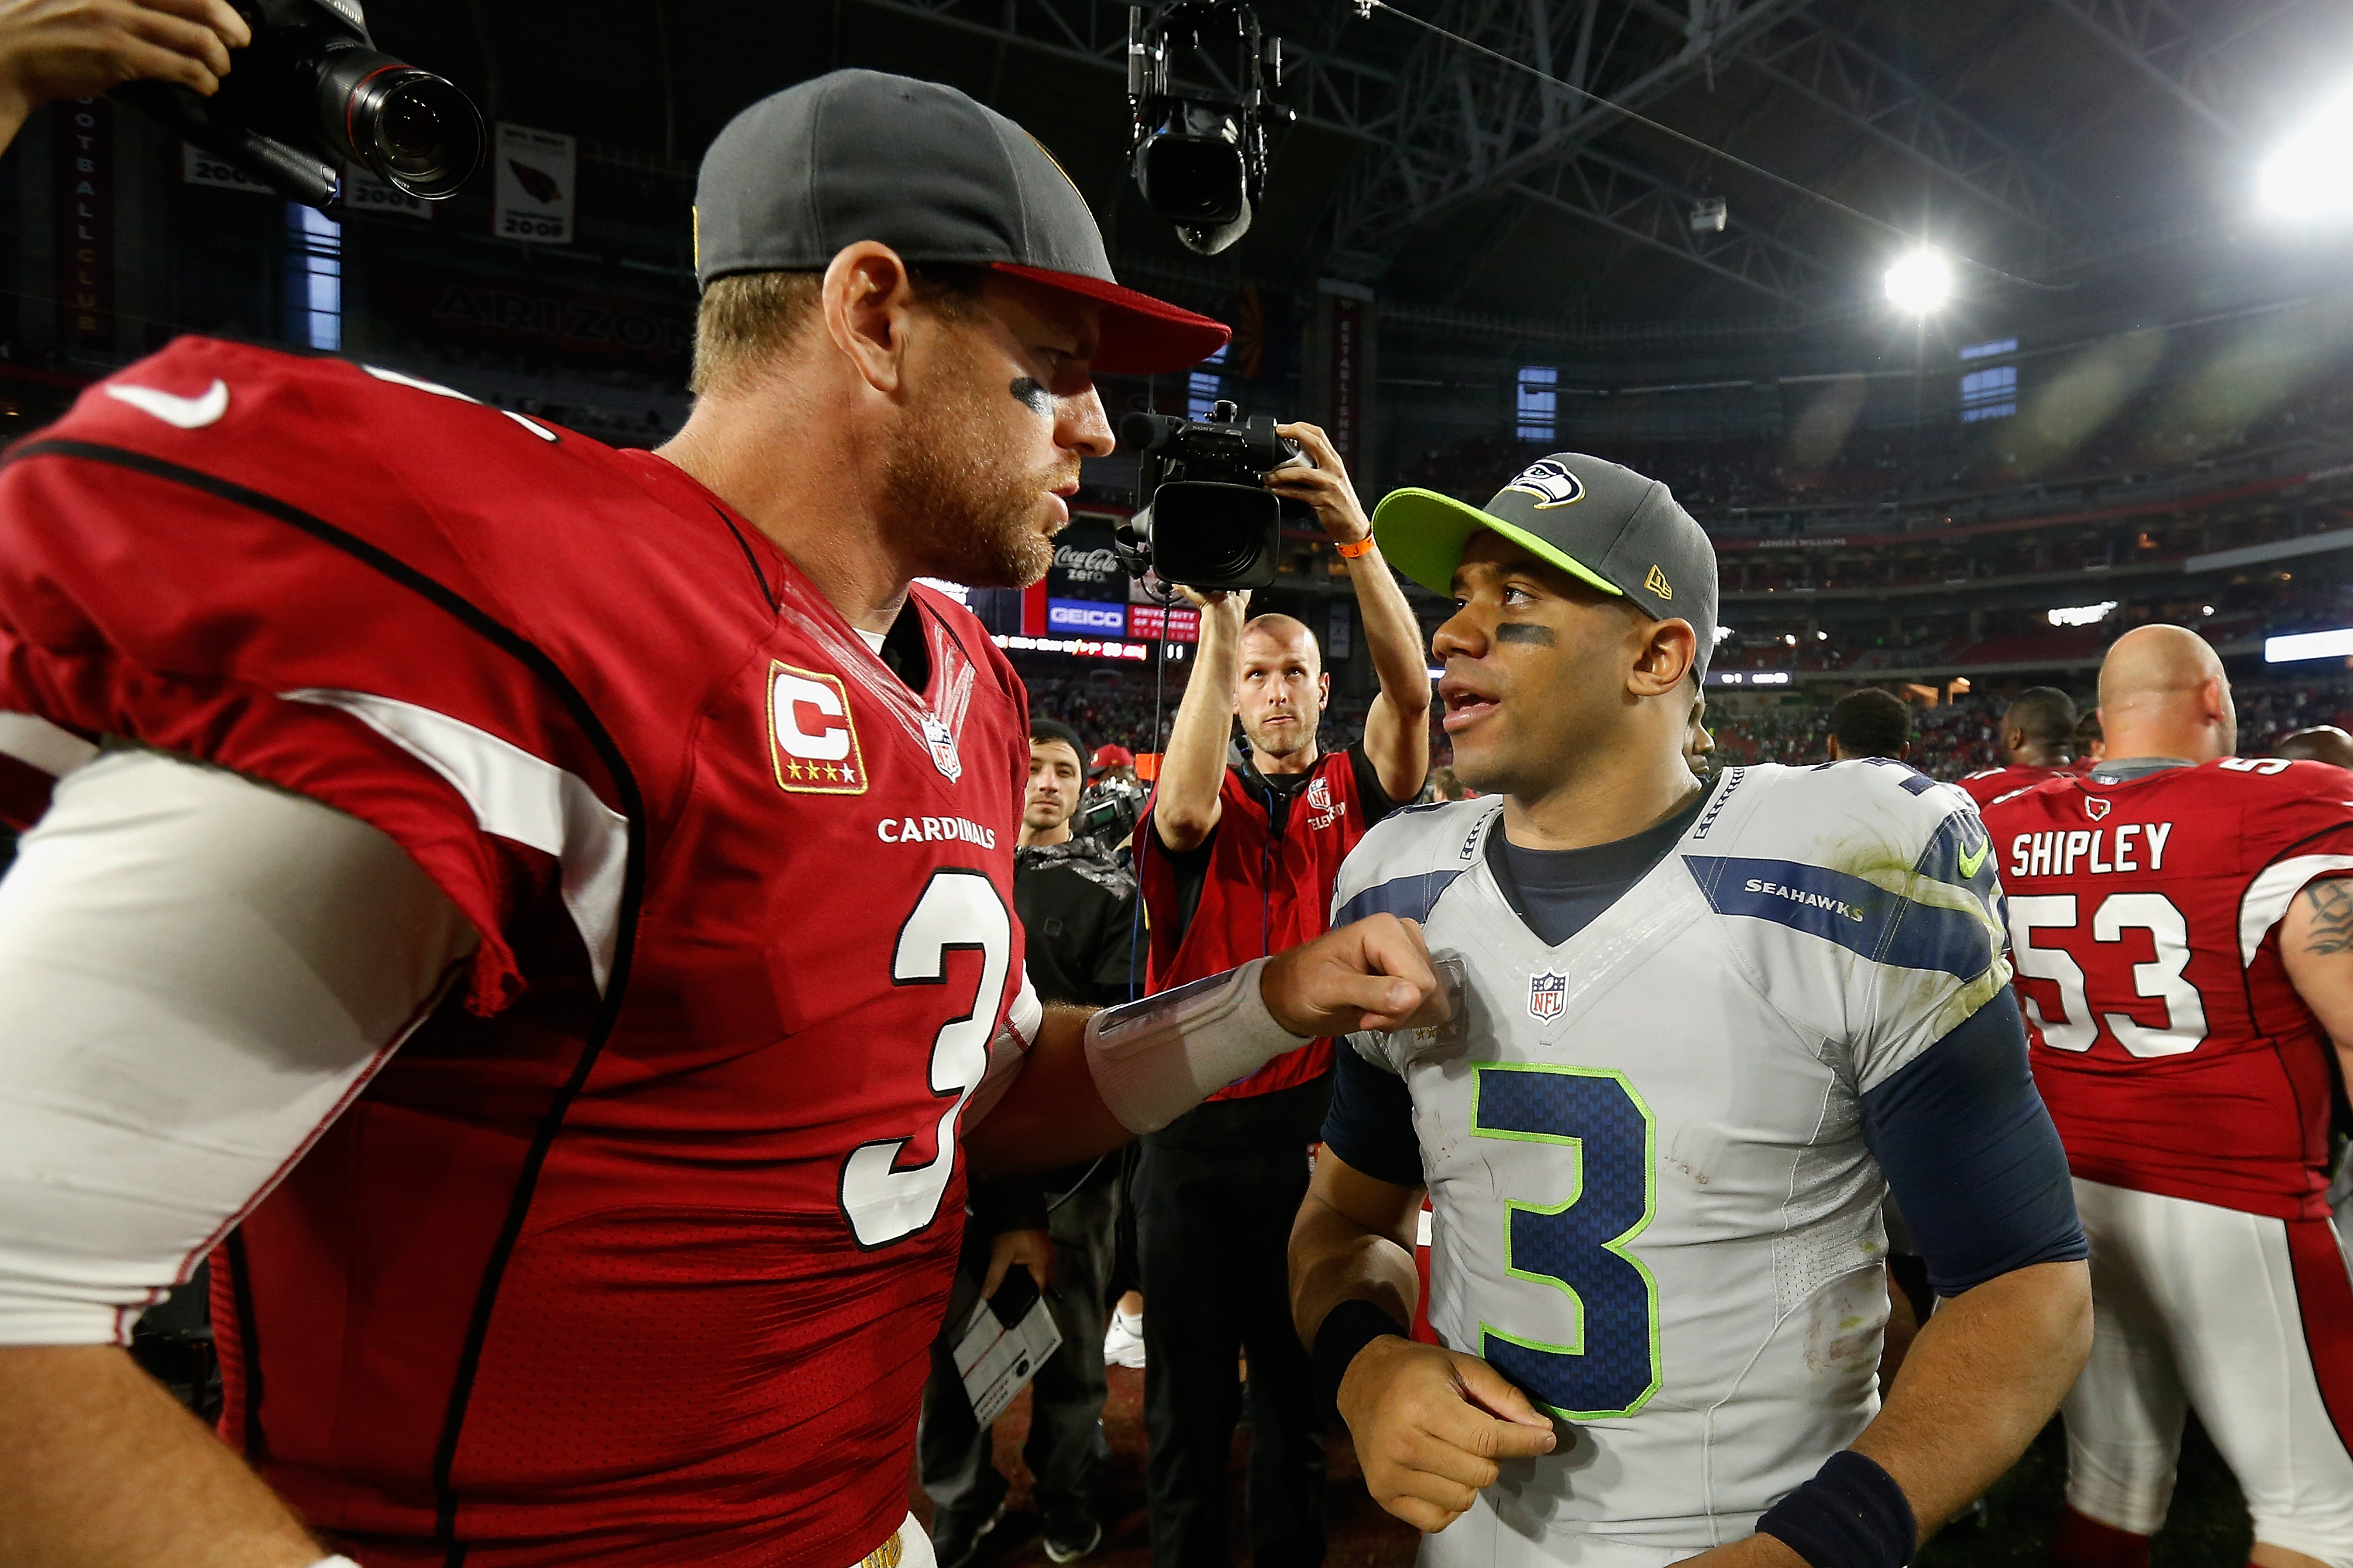 Russell Wilson & Carson Palmer head into 2016 as the top Quarterbacks in the NFC West